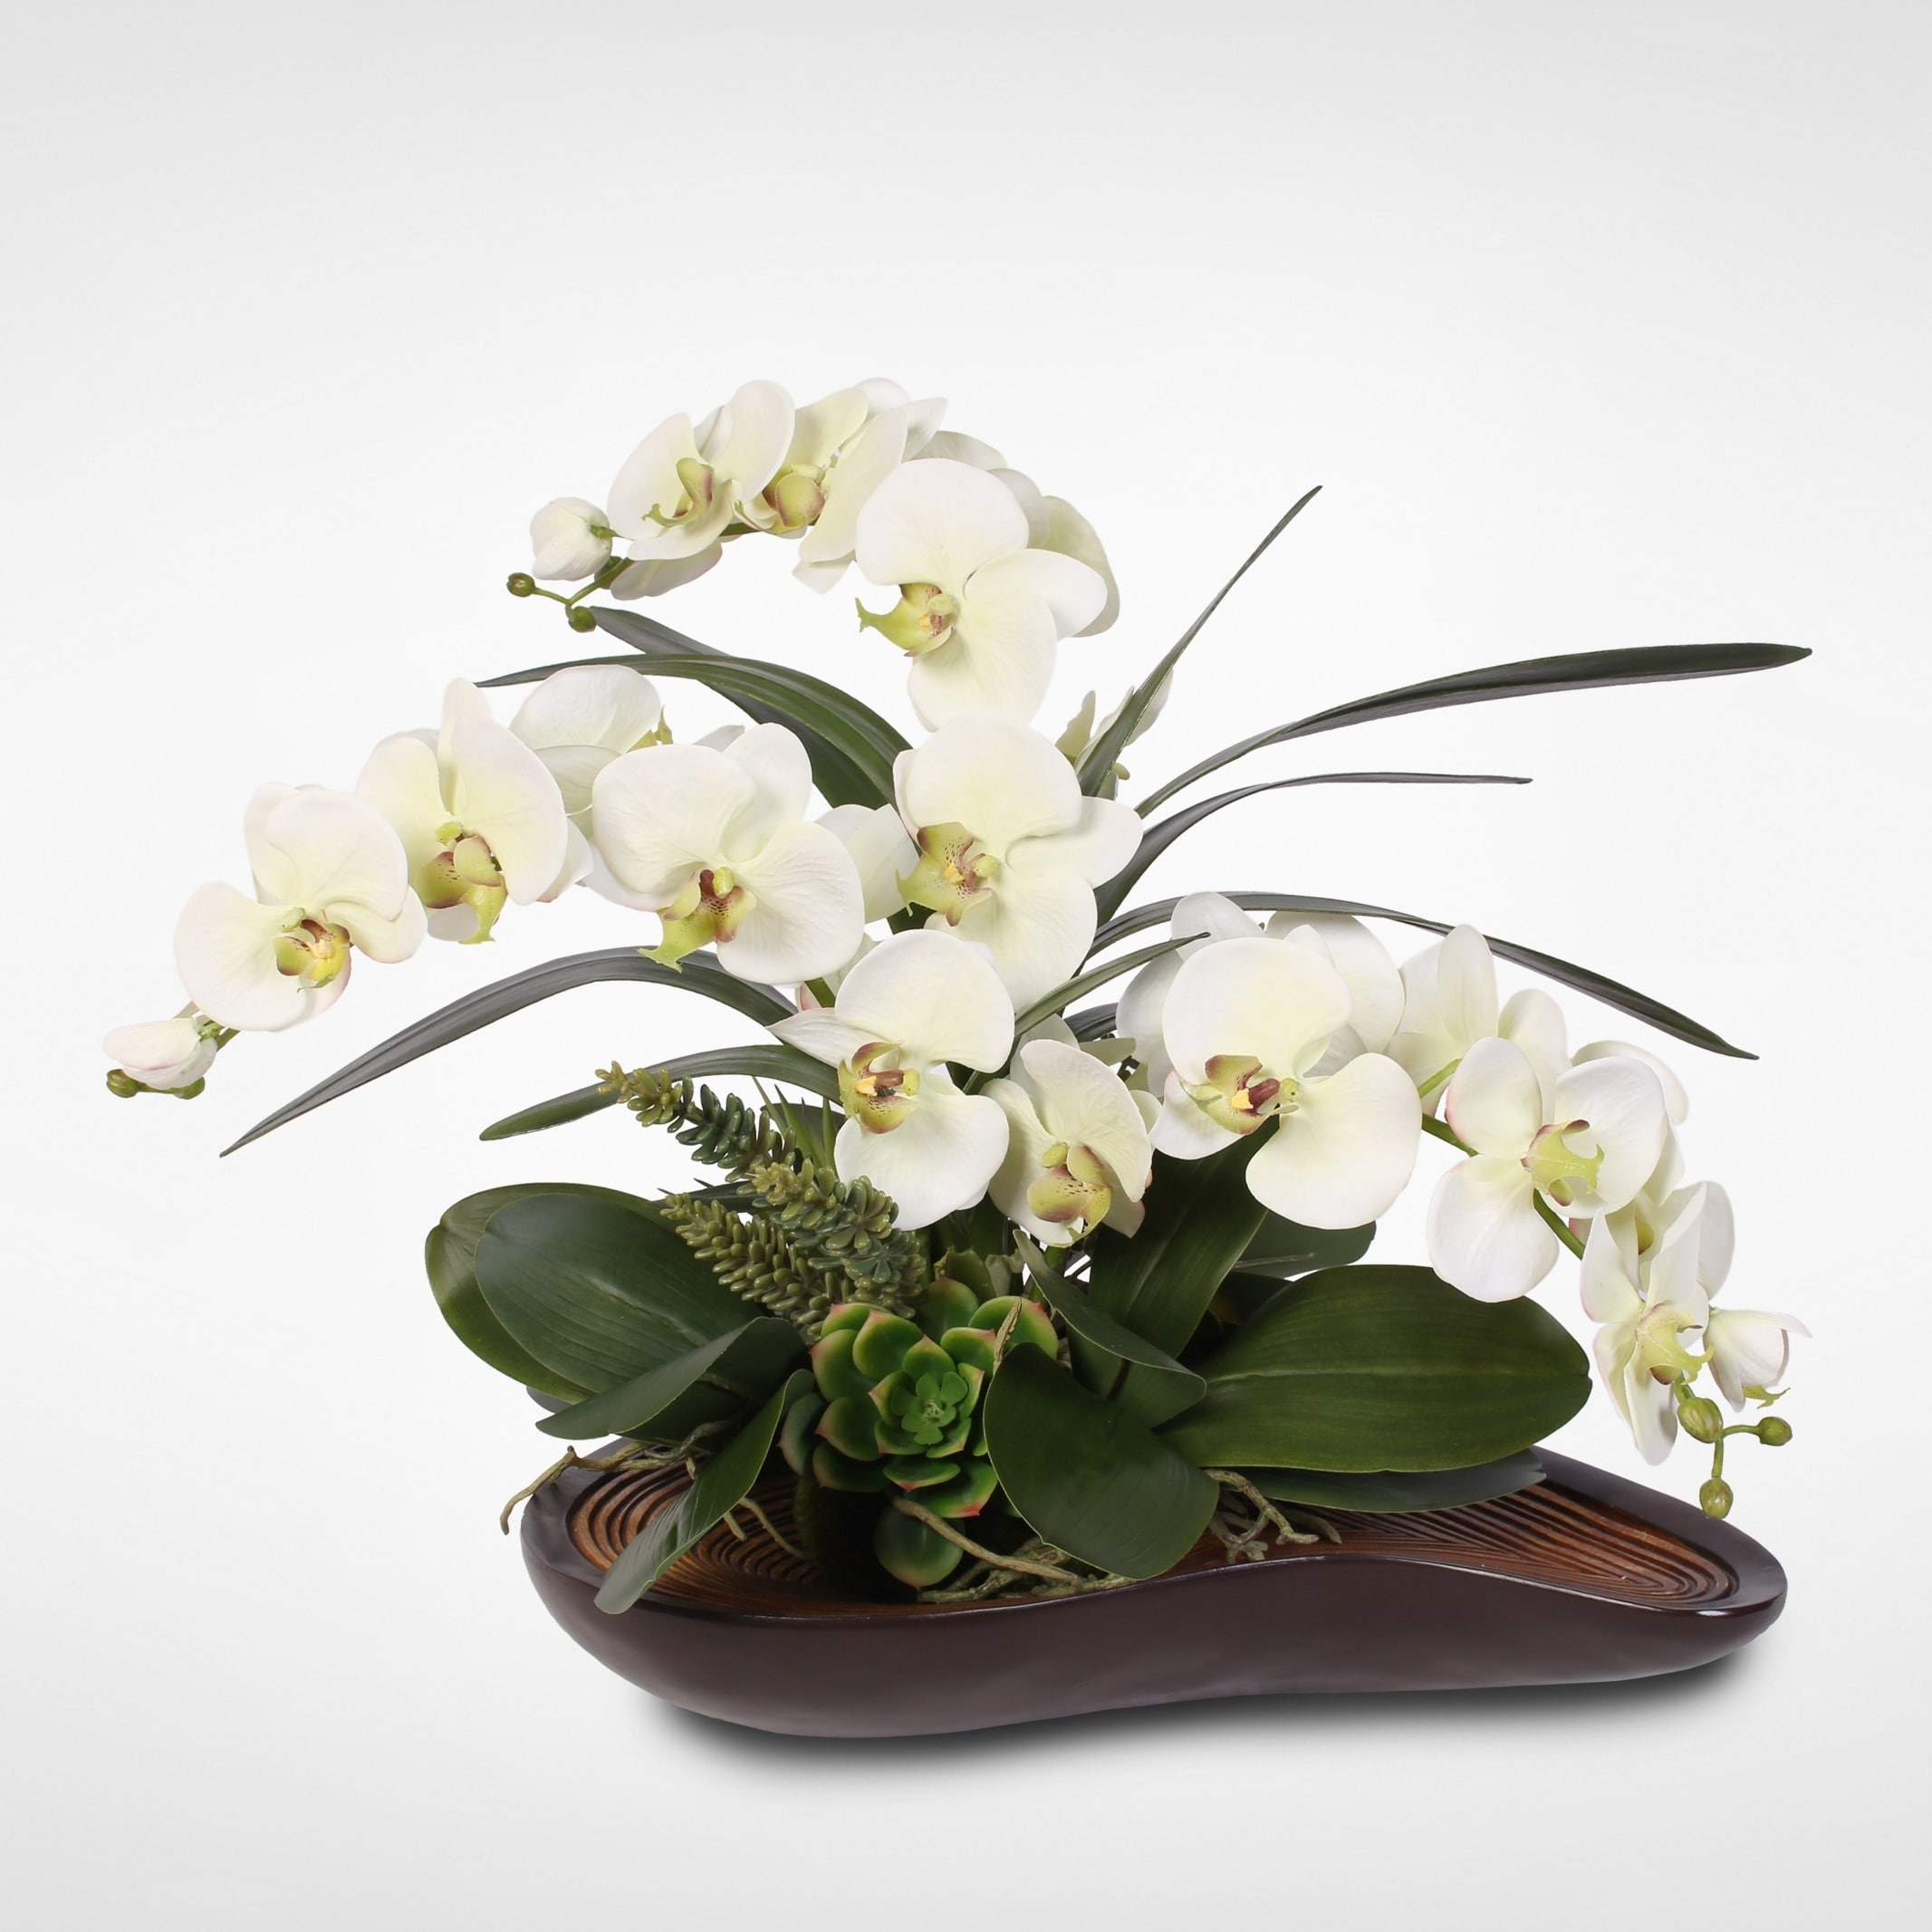 Green Phalaenopsis Orchid & Artificial Succulents in Curved Wooden Bowl